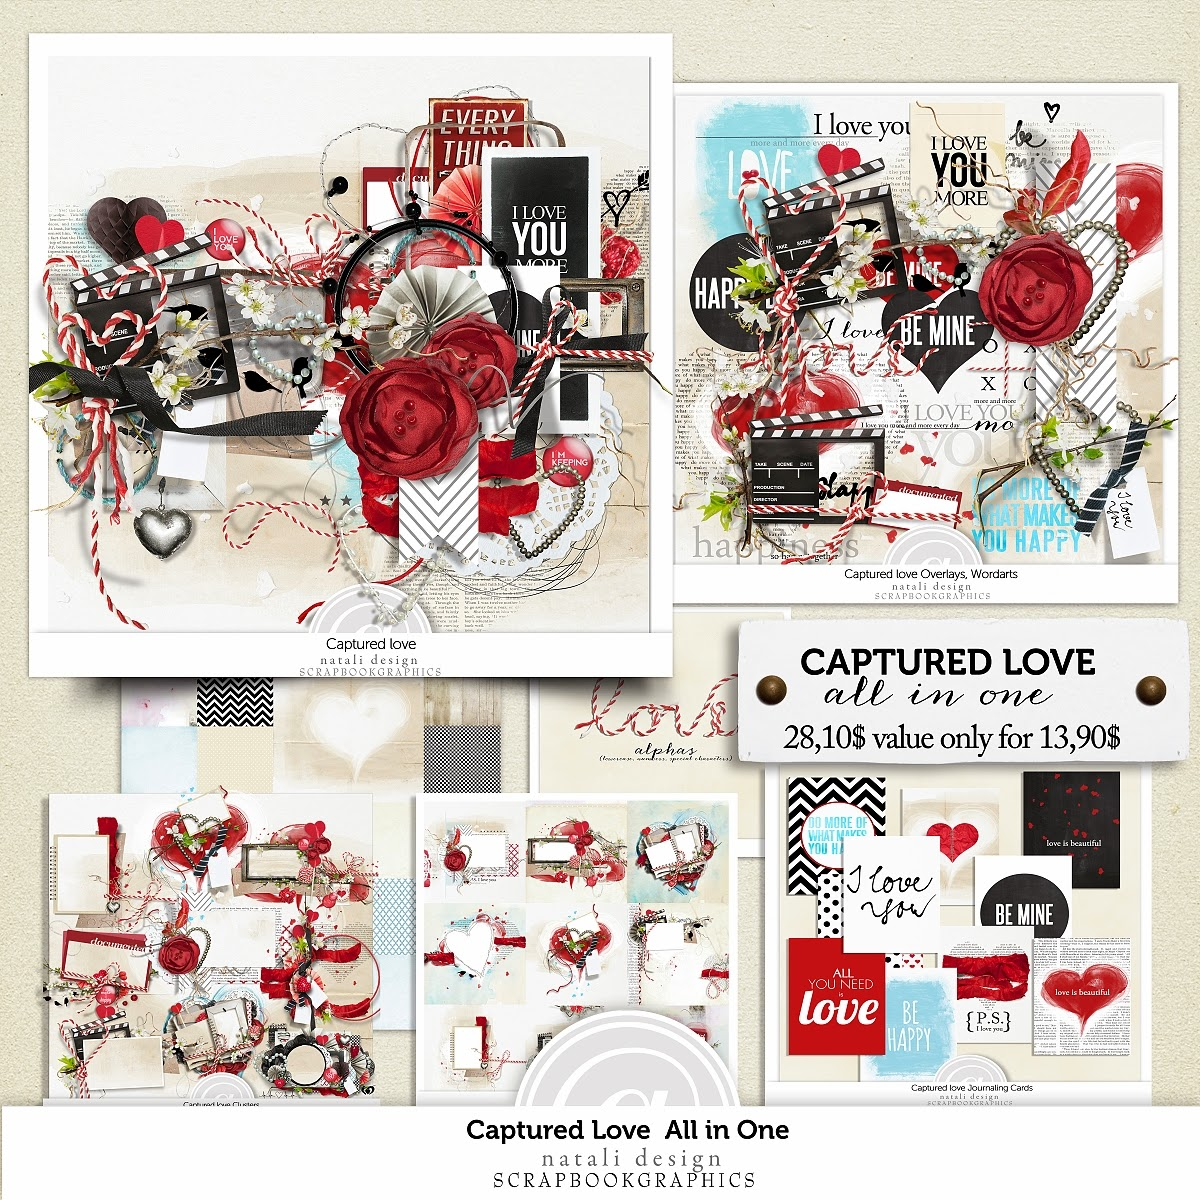 http://shop.scrapbookgraphics.com/Captured-Love-All-in-One.html